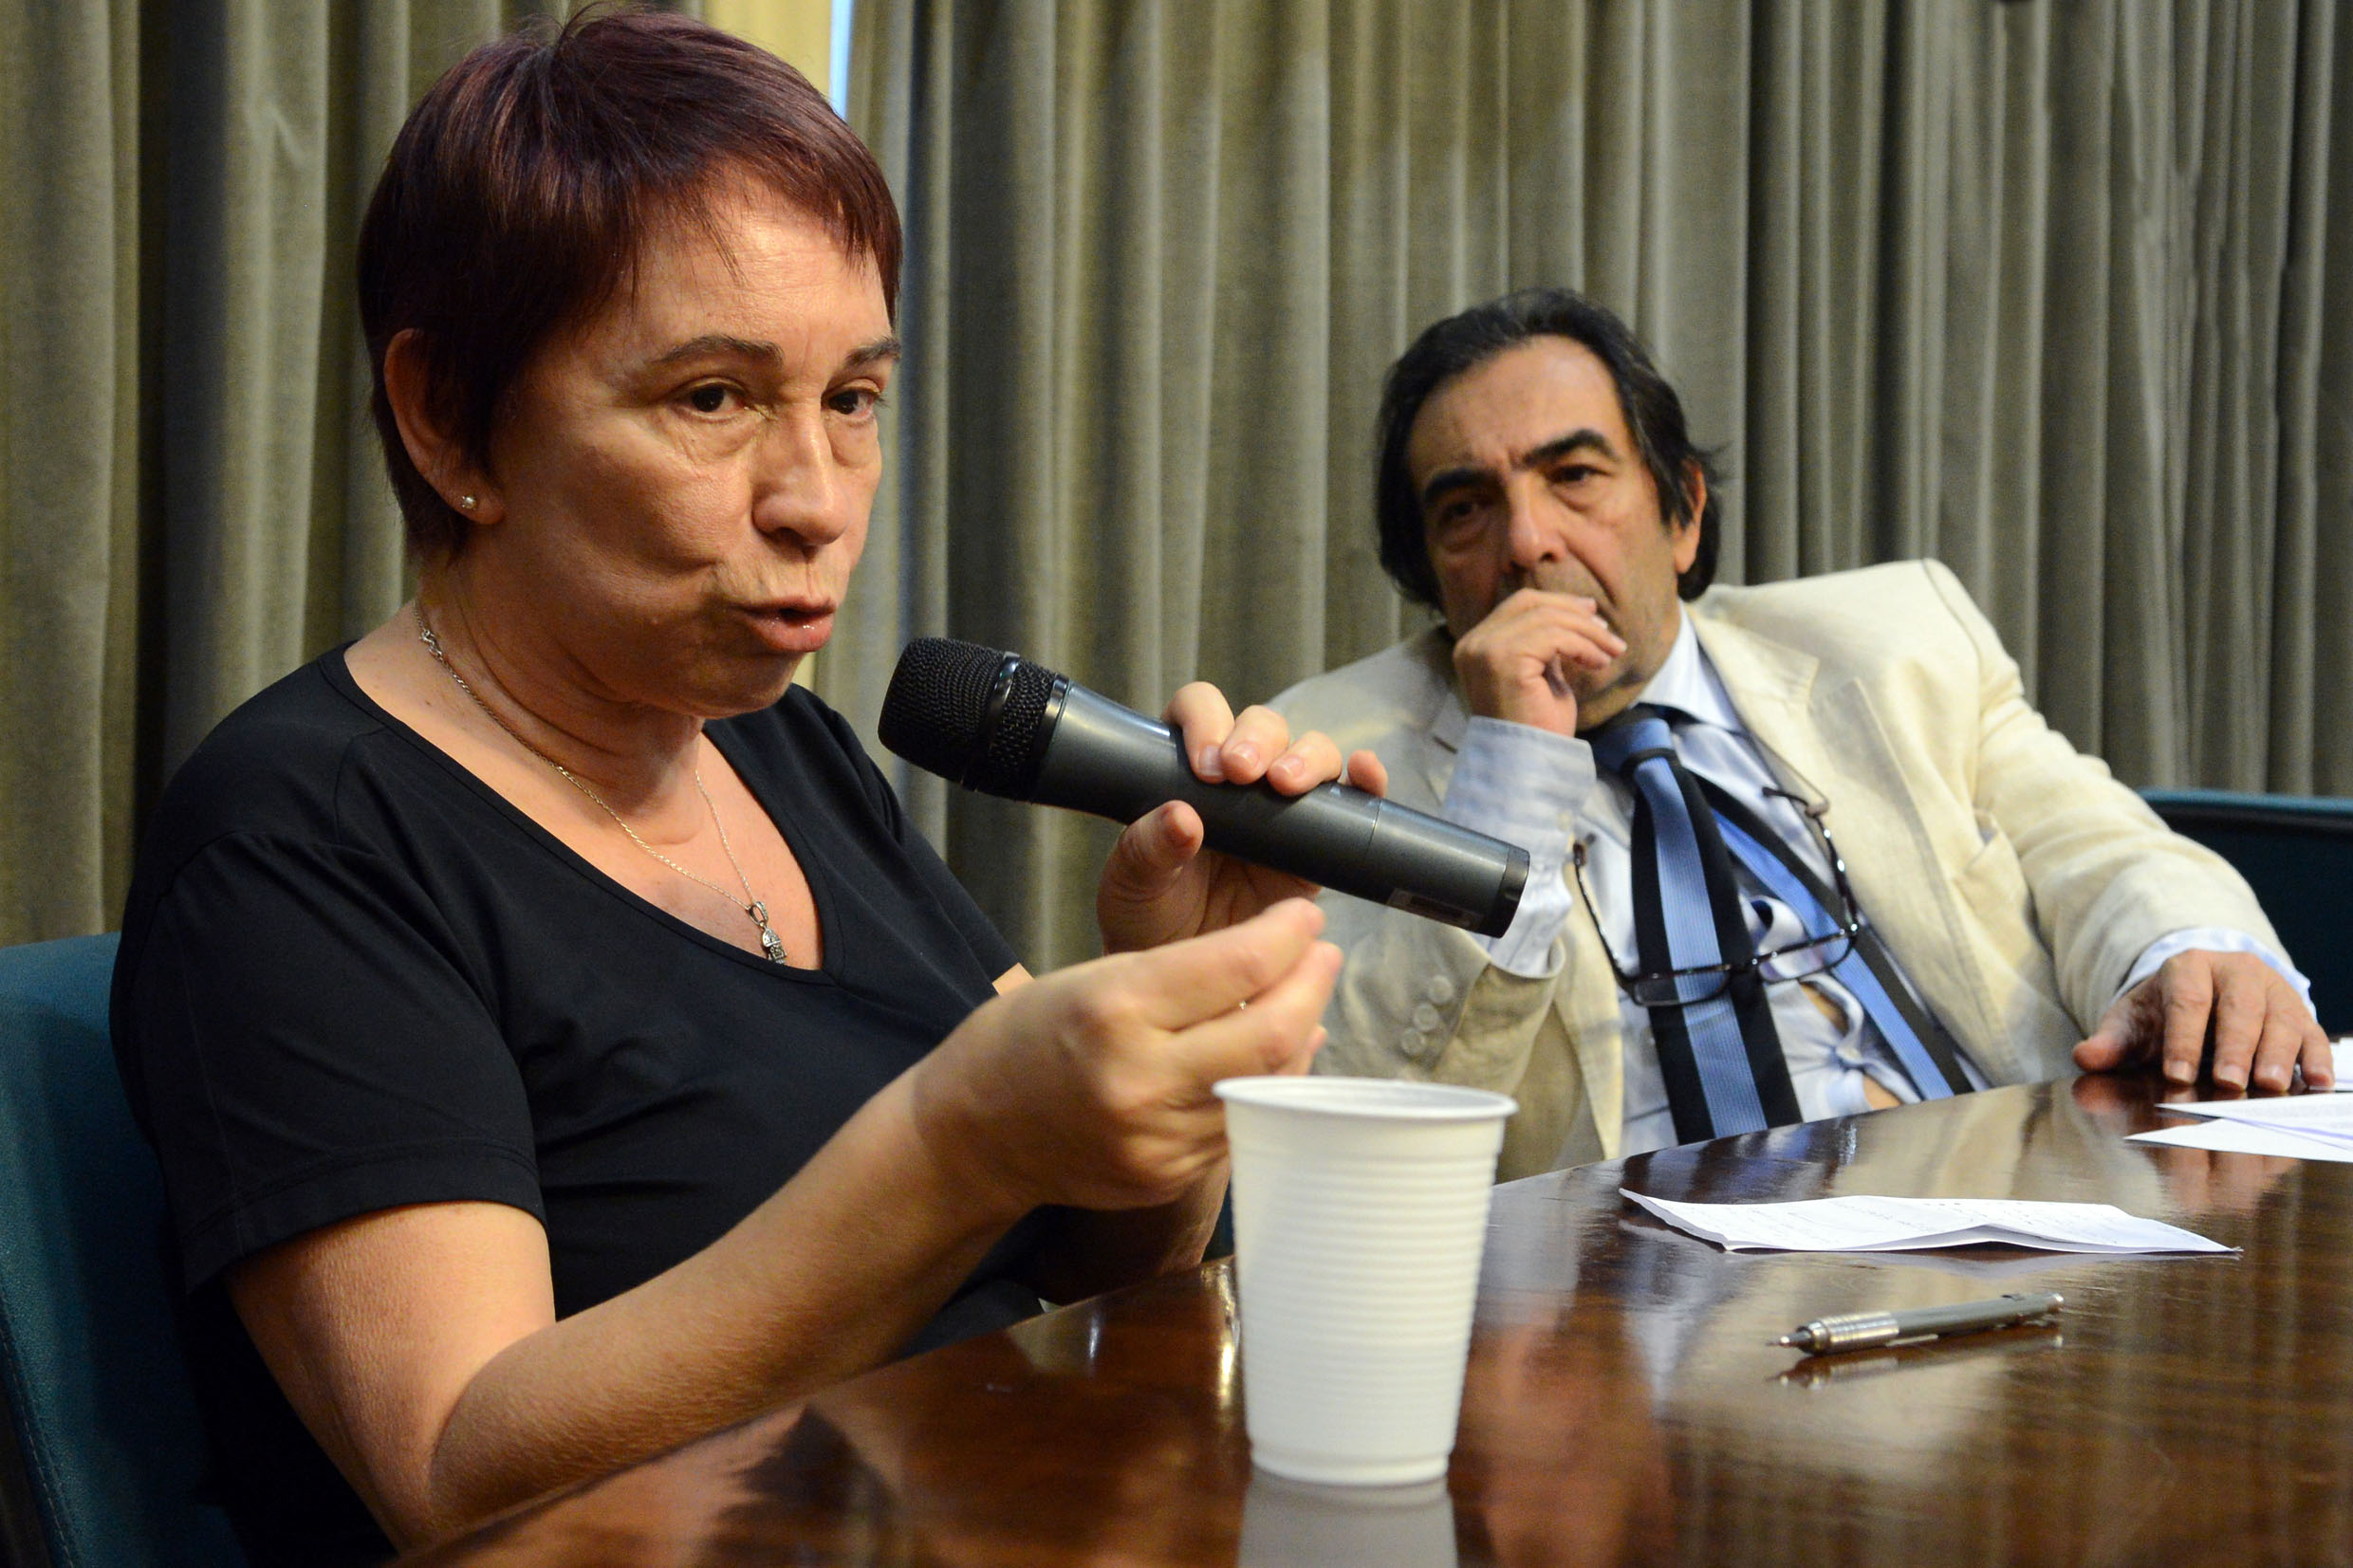 Ana Maria Gomes e Adriano Diogo<a style='float:right' href='https://www3.al.sp.gov.br/repositorio/noticia/N-09-2013/fg129759.jpg' target=_blank><img src='/_img/material-file-download-white.png' width='14px' alt='Clique para baixar a imagem'></a>